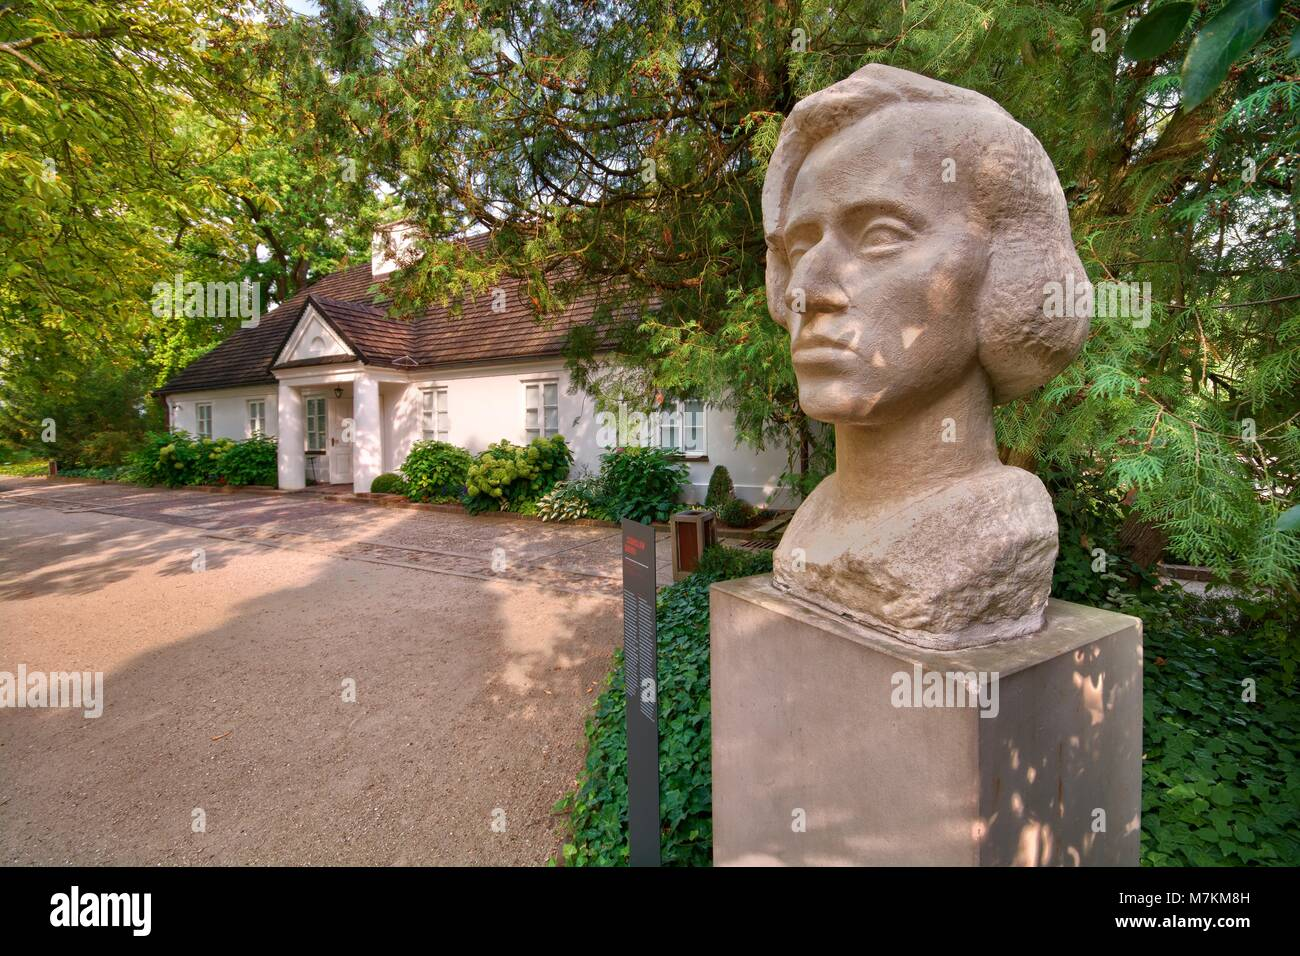 WARSAW, POLAND - AUGUST 20: Statue of Frederick Chopin in the park against his birthplace - little manor-house on - Stock Image